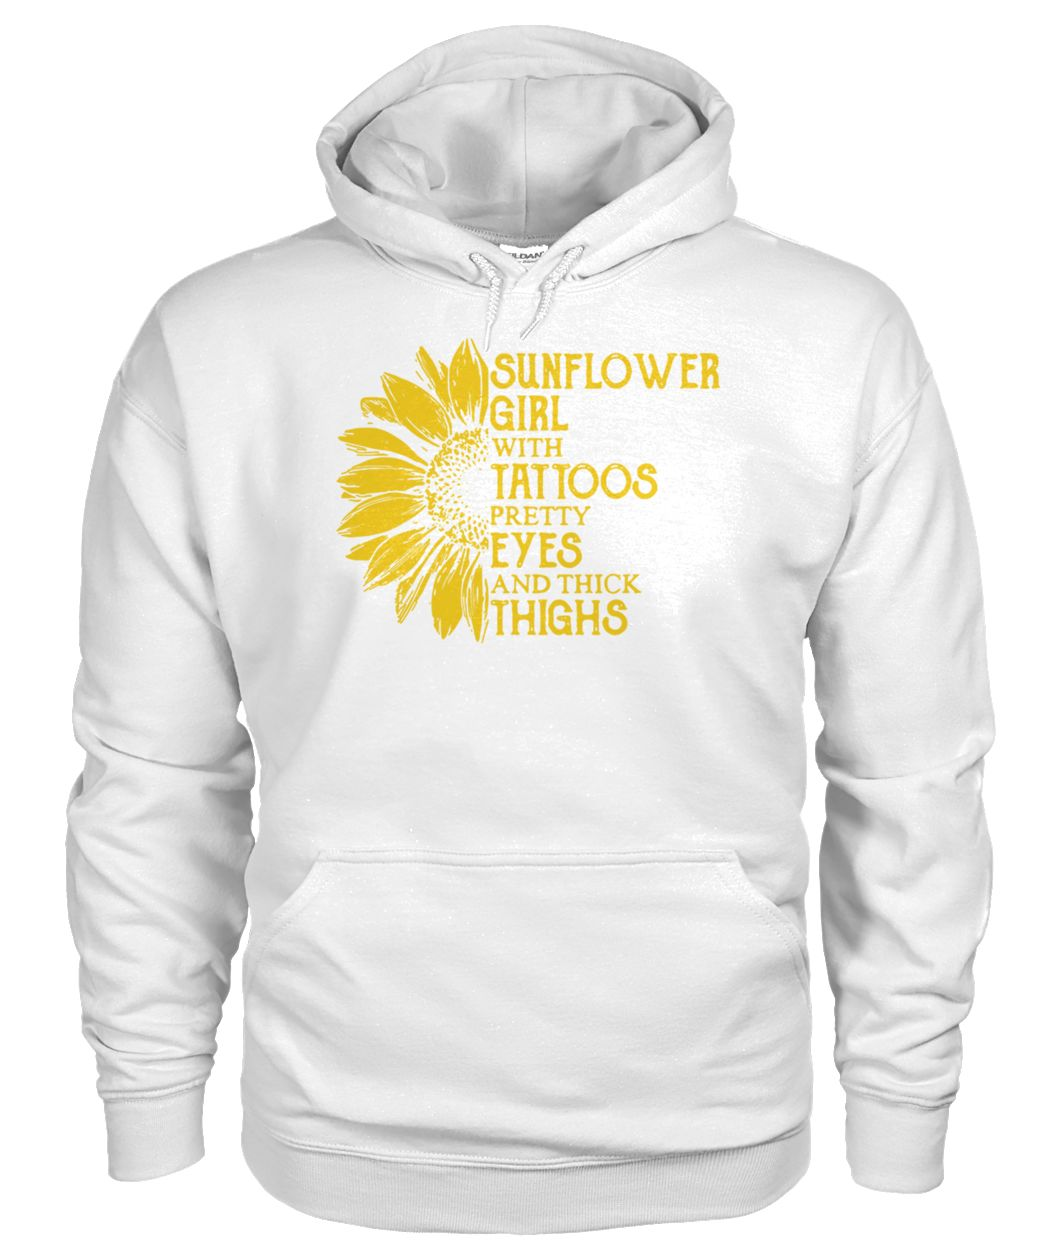 Sunflower girl with tattoos pretty eyes and thick thighs gildan hoodie